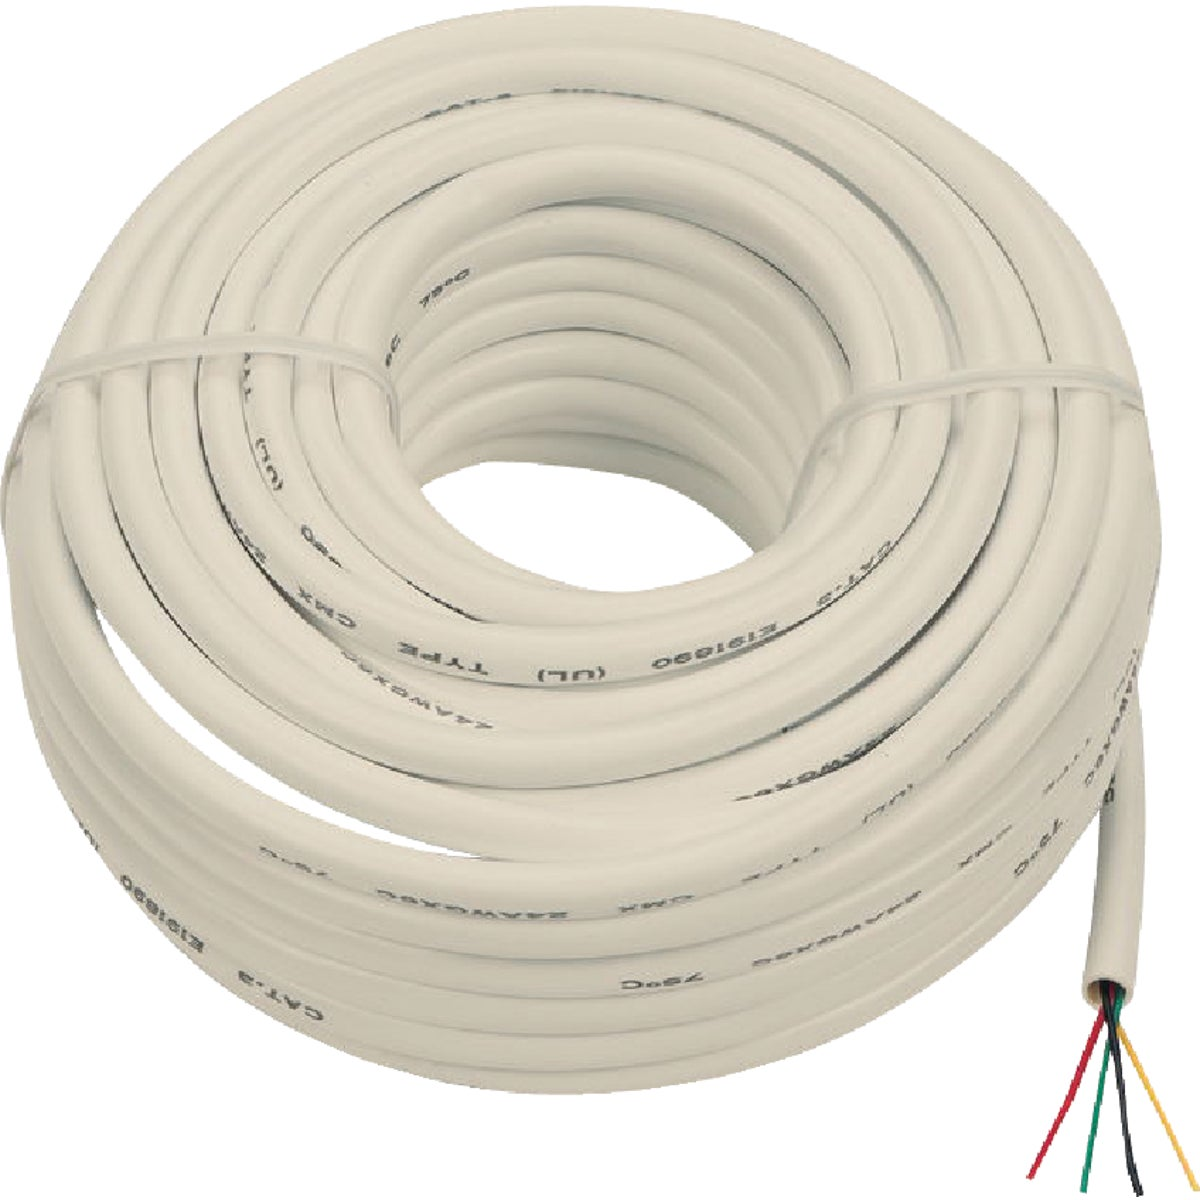 50' WHT PHONE WIRE - TP003RV by Audiovox Accessories